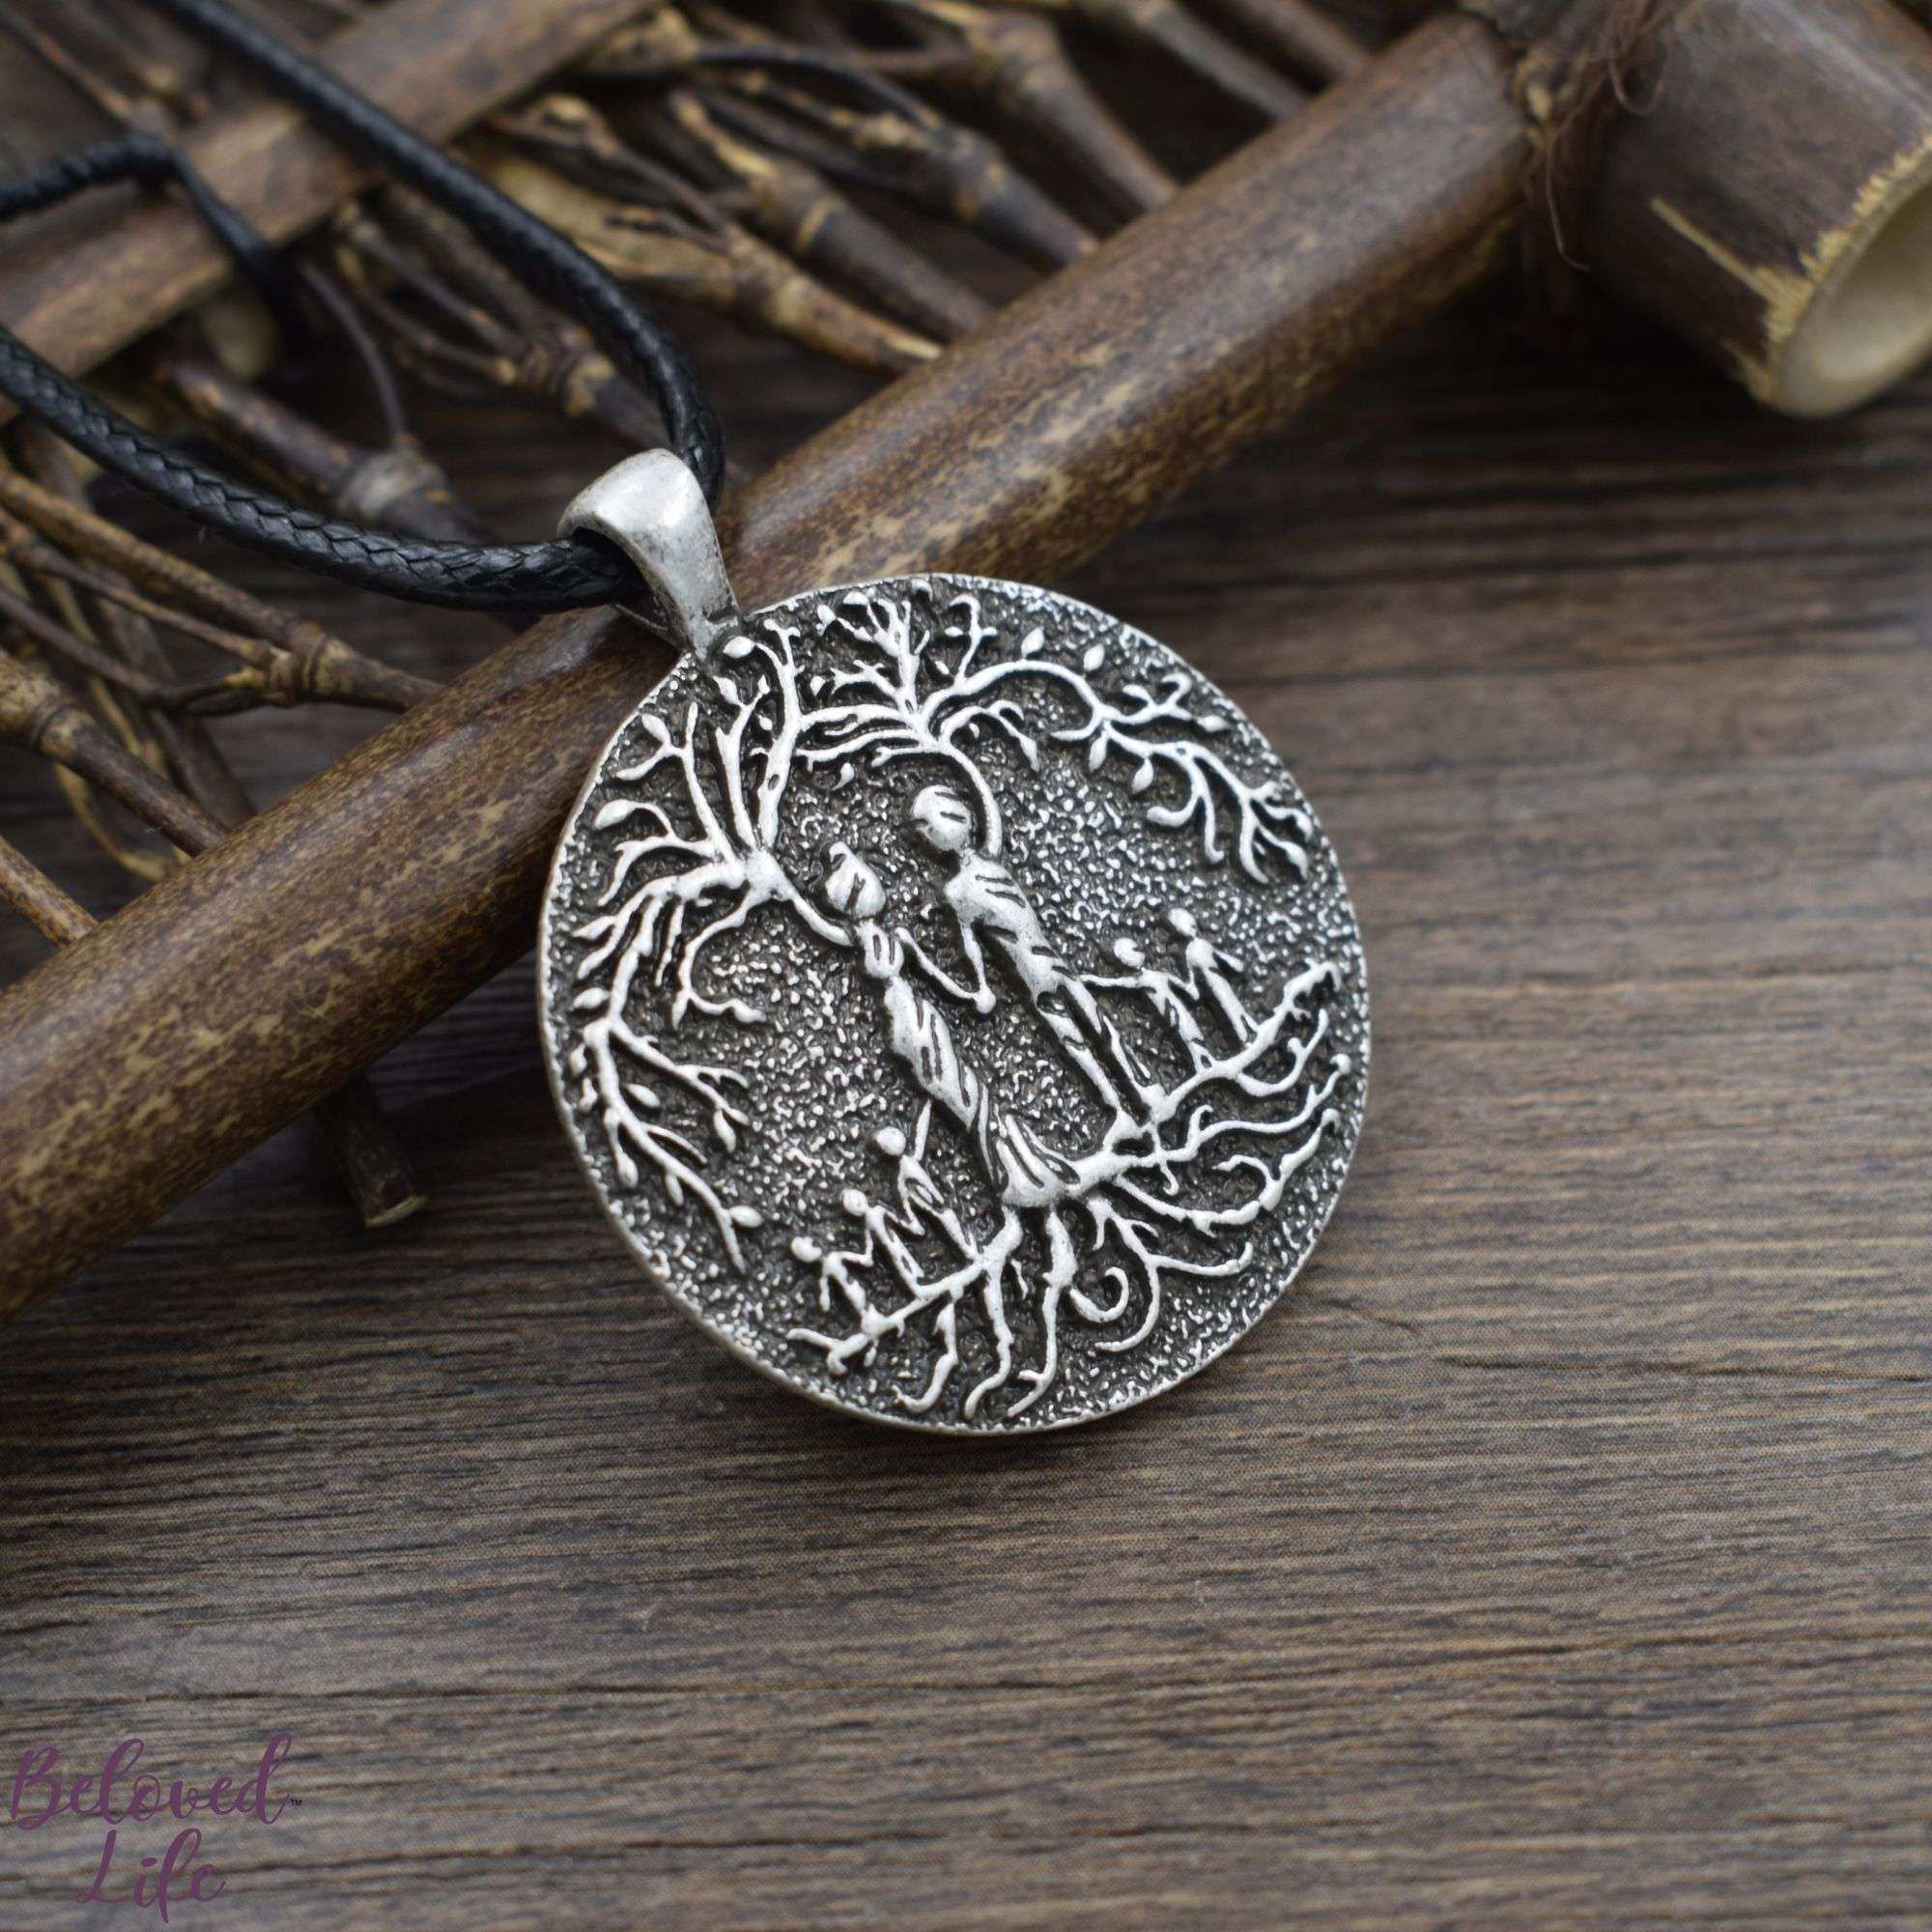 Beloved Life Jewelry: Grandparents & 5 Grandchild 'Tree of Life' Pendant Necklace [Silver]